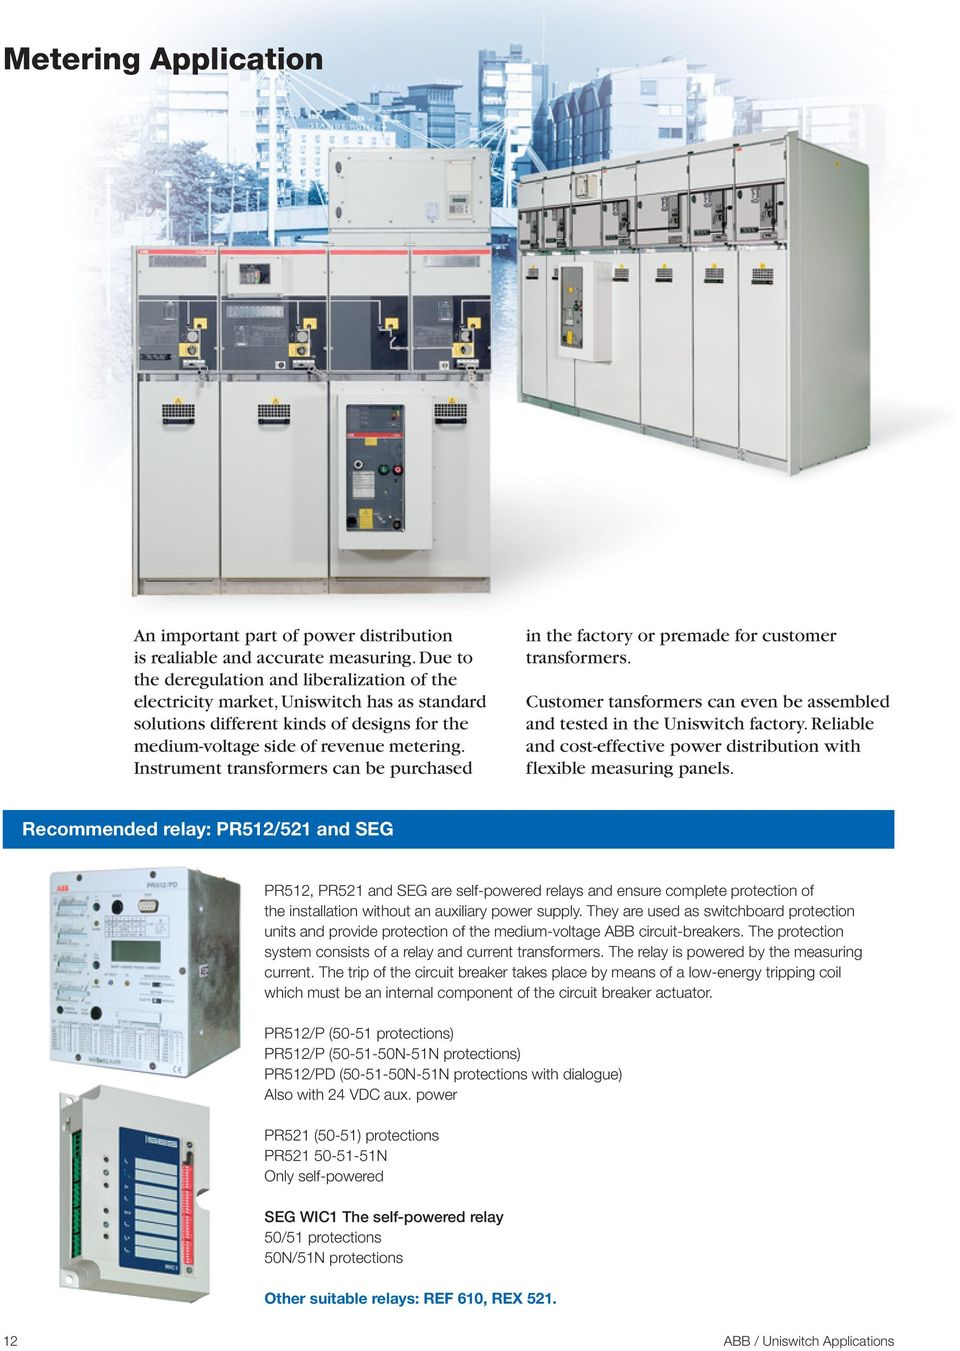 Instrument transformers can be purchased in the factory or premade for customer transformers. Customer tansformers can even be assembled and tested in the Uniswitch factory.